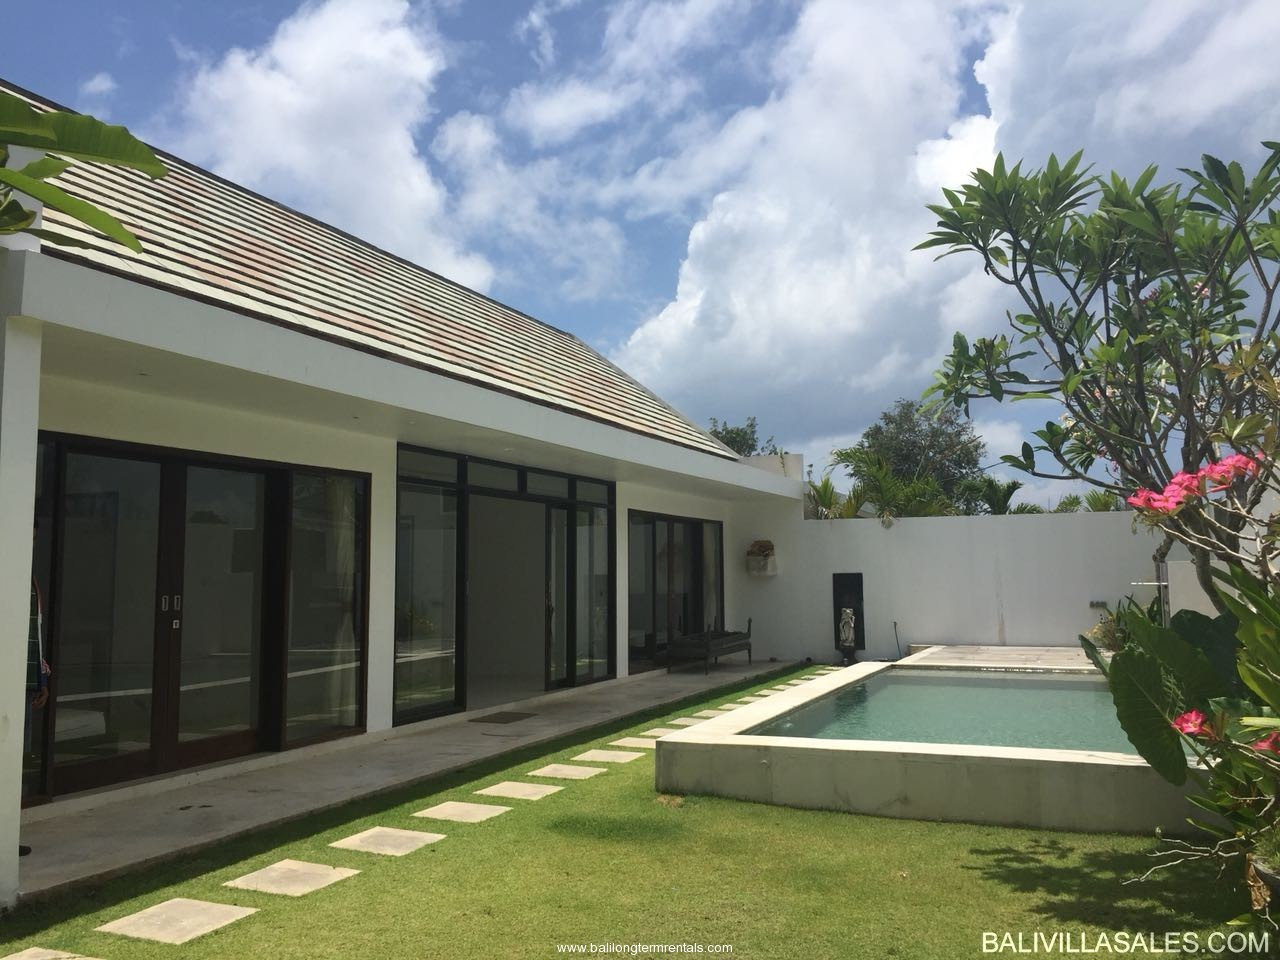 Freehold 2 bedroom villa in Nusa Dua